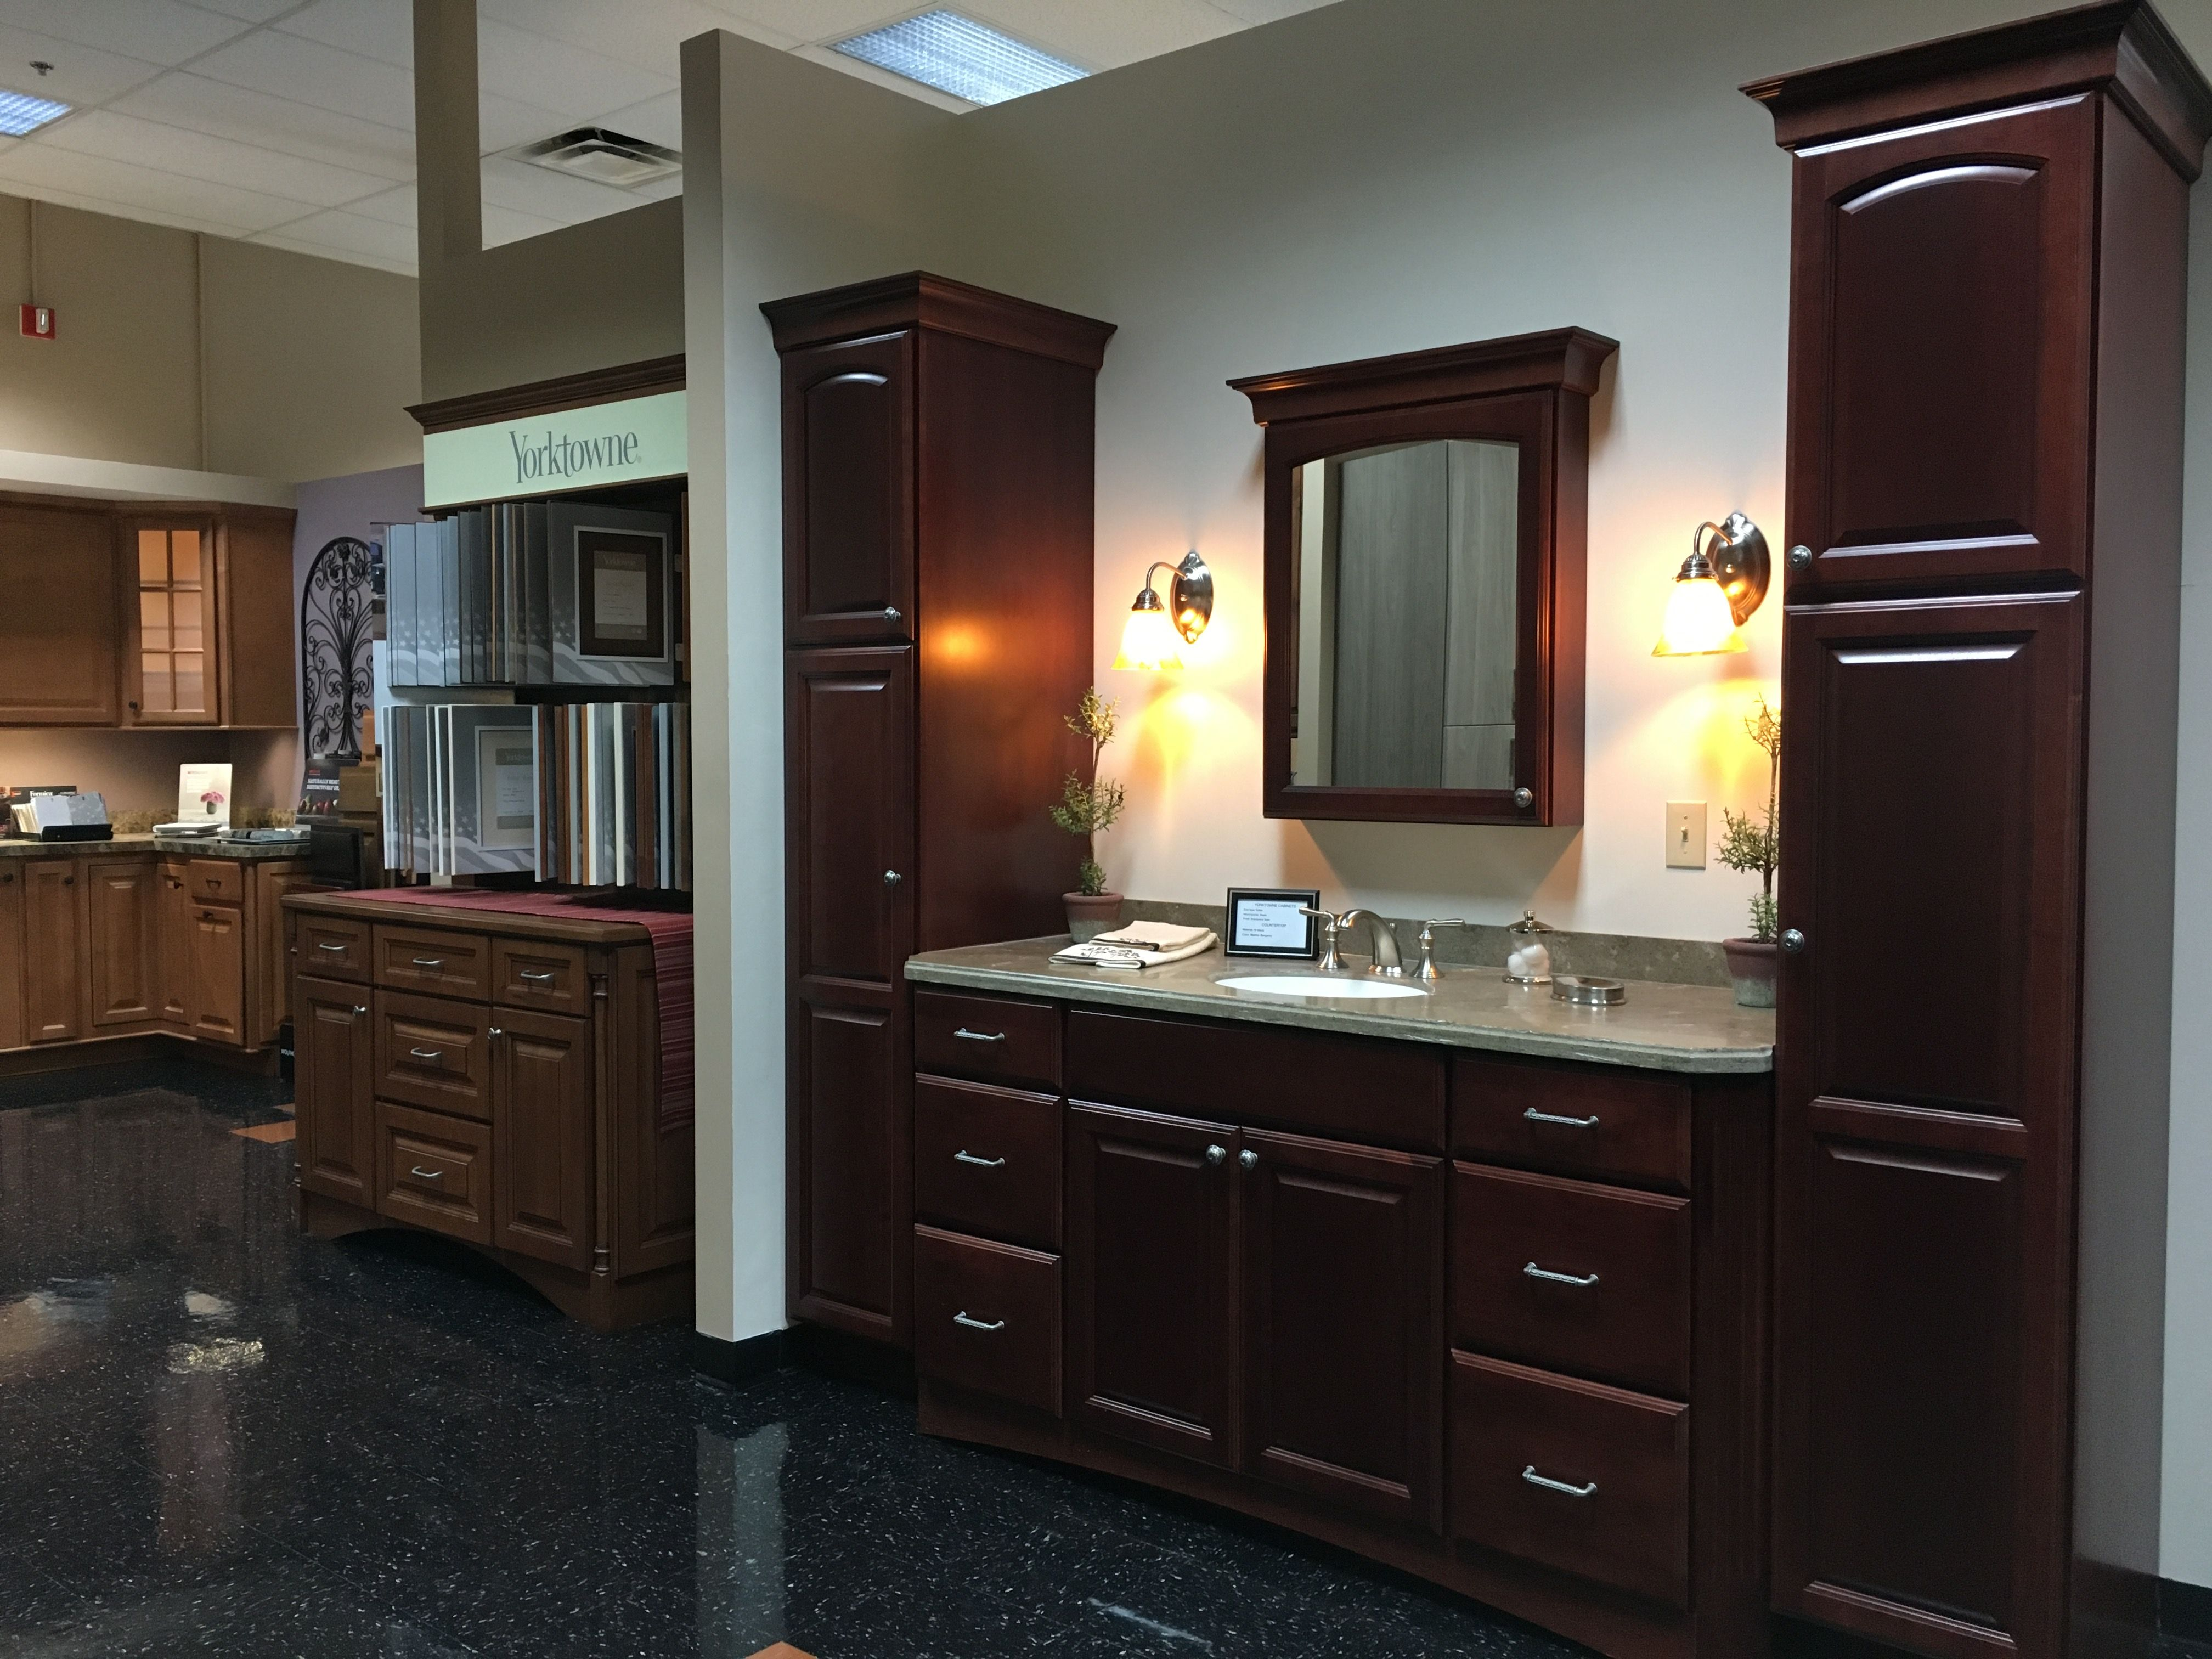 Single Bowl Vanity Set Up Flanked With Linen Units To Maximize Storage And Give An Elegant Look With S Kitchen Cabinets Showroom Vanity Set Up Cabinetry Design